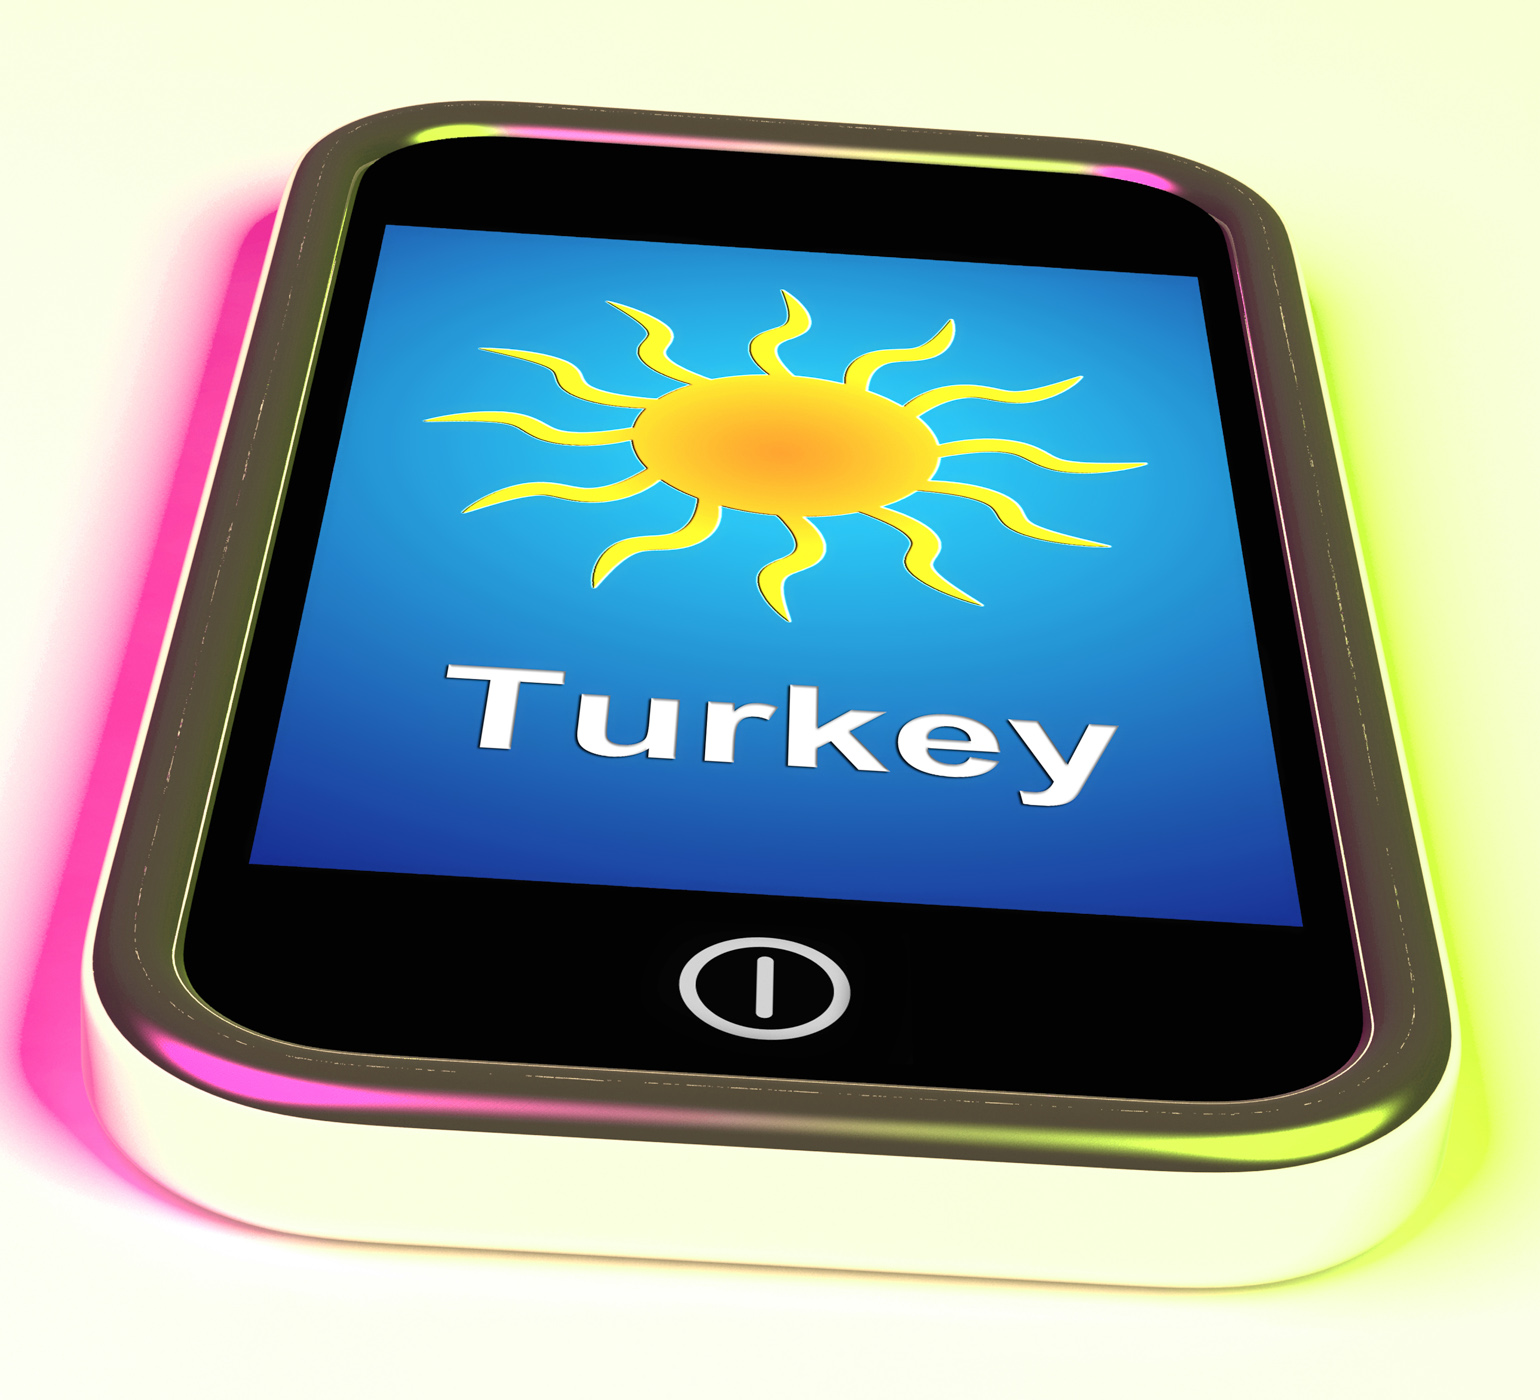 Turkey On Phone Means Holidays And Sunny Weather, Break, Sunlight, Weather, Vacation, HQ Photo